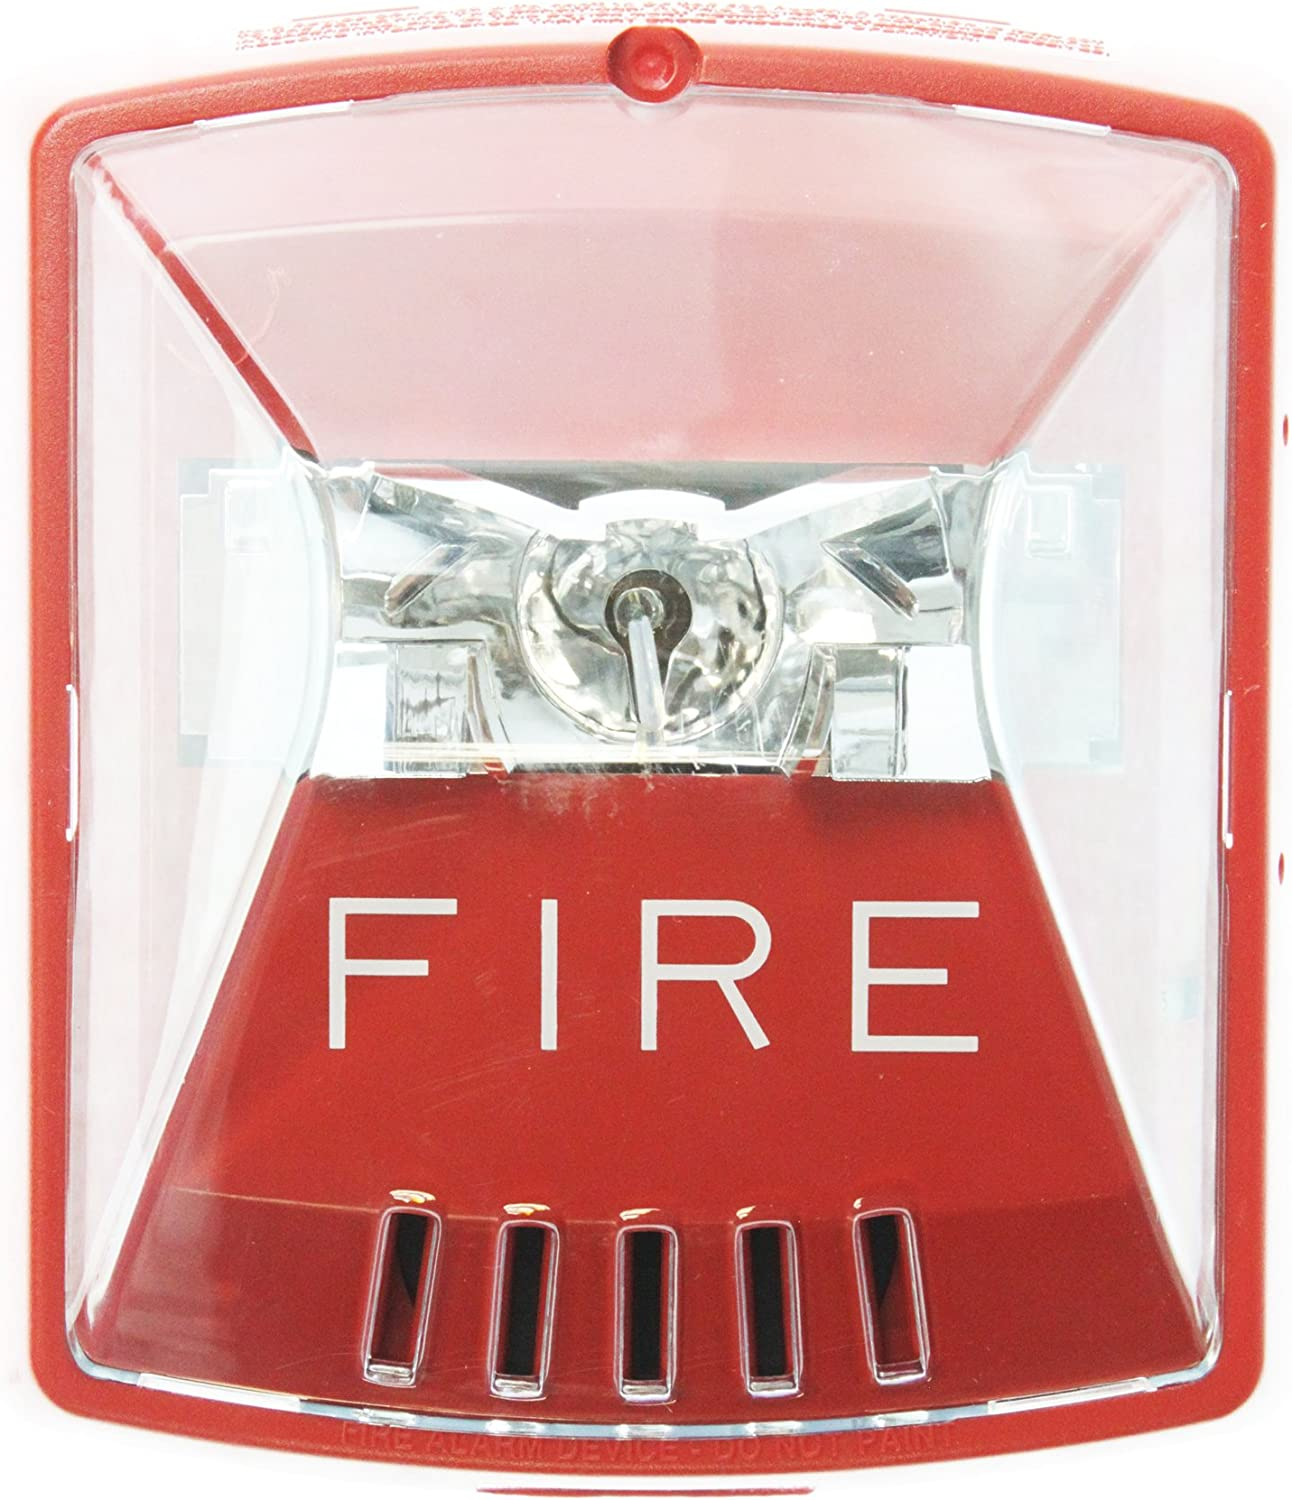 Wheelock HSR Exceder Fire Alerting Strobe Horn RED,2W,Wall Mount, 12 24V, 8CD